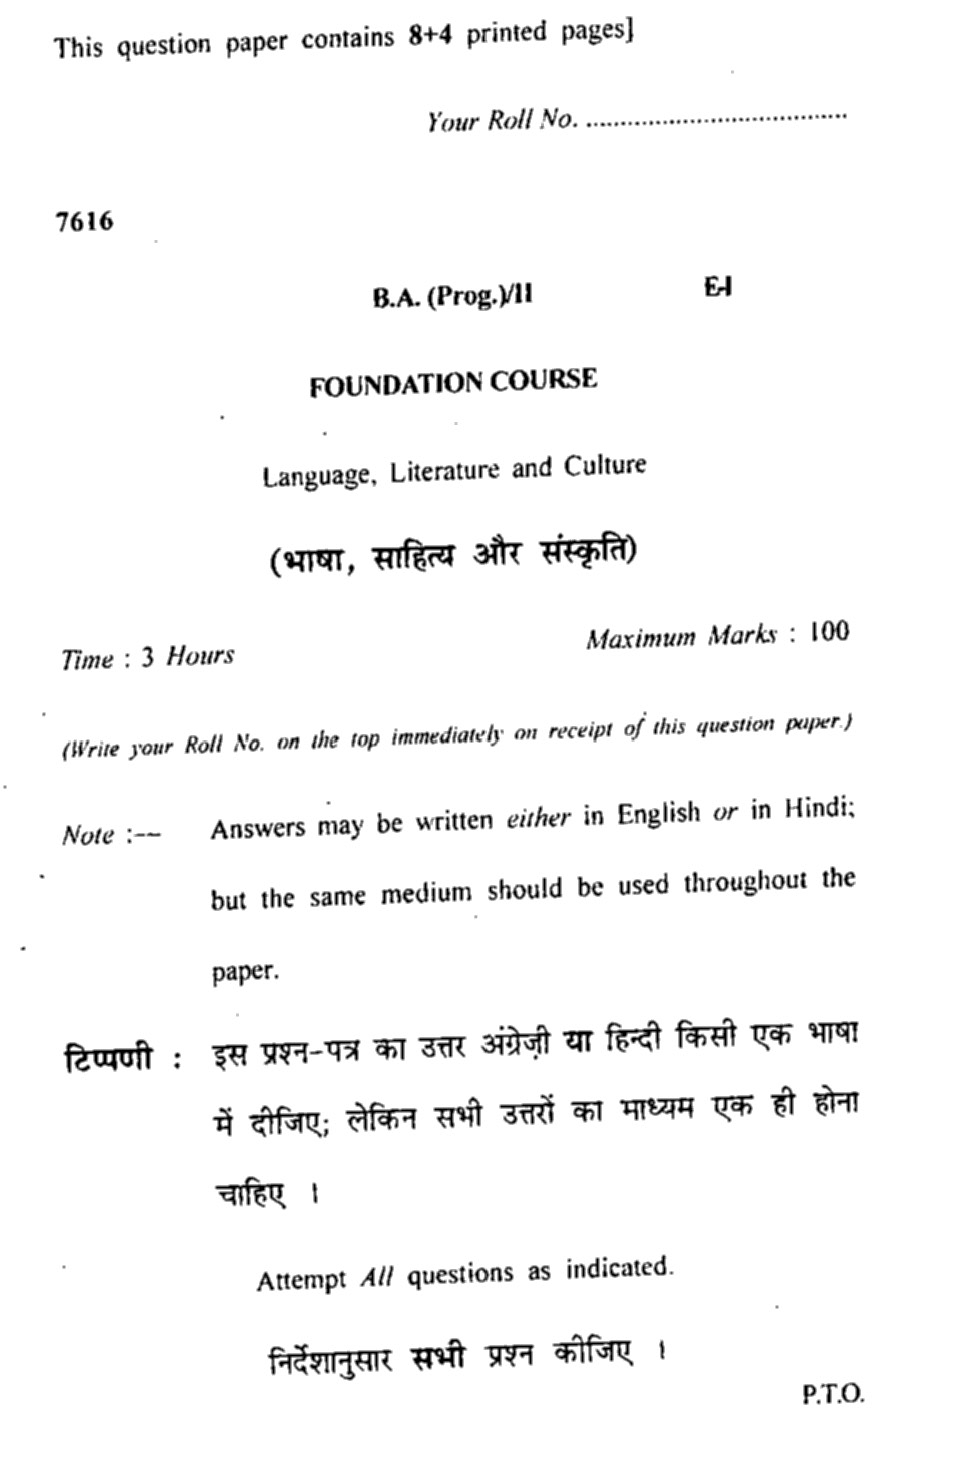 School of Open Learning (SOL) Question papers: Question Paper